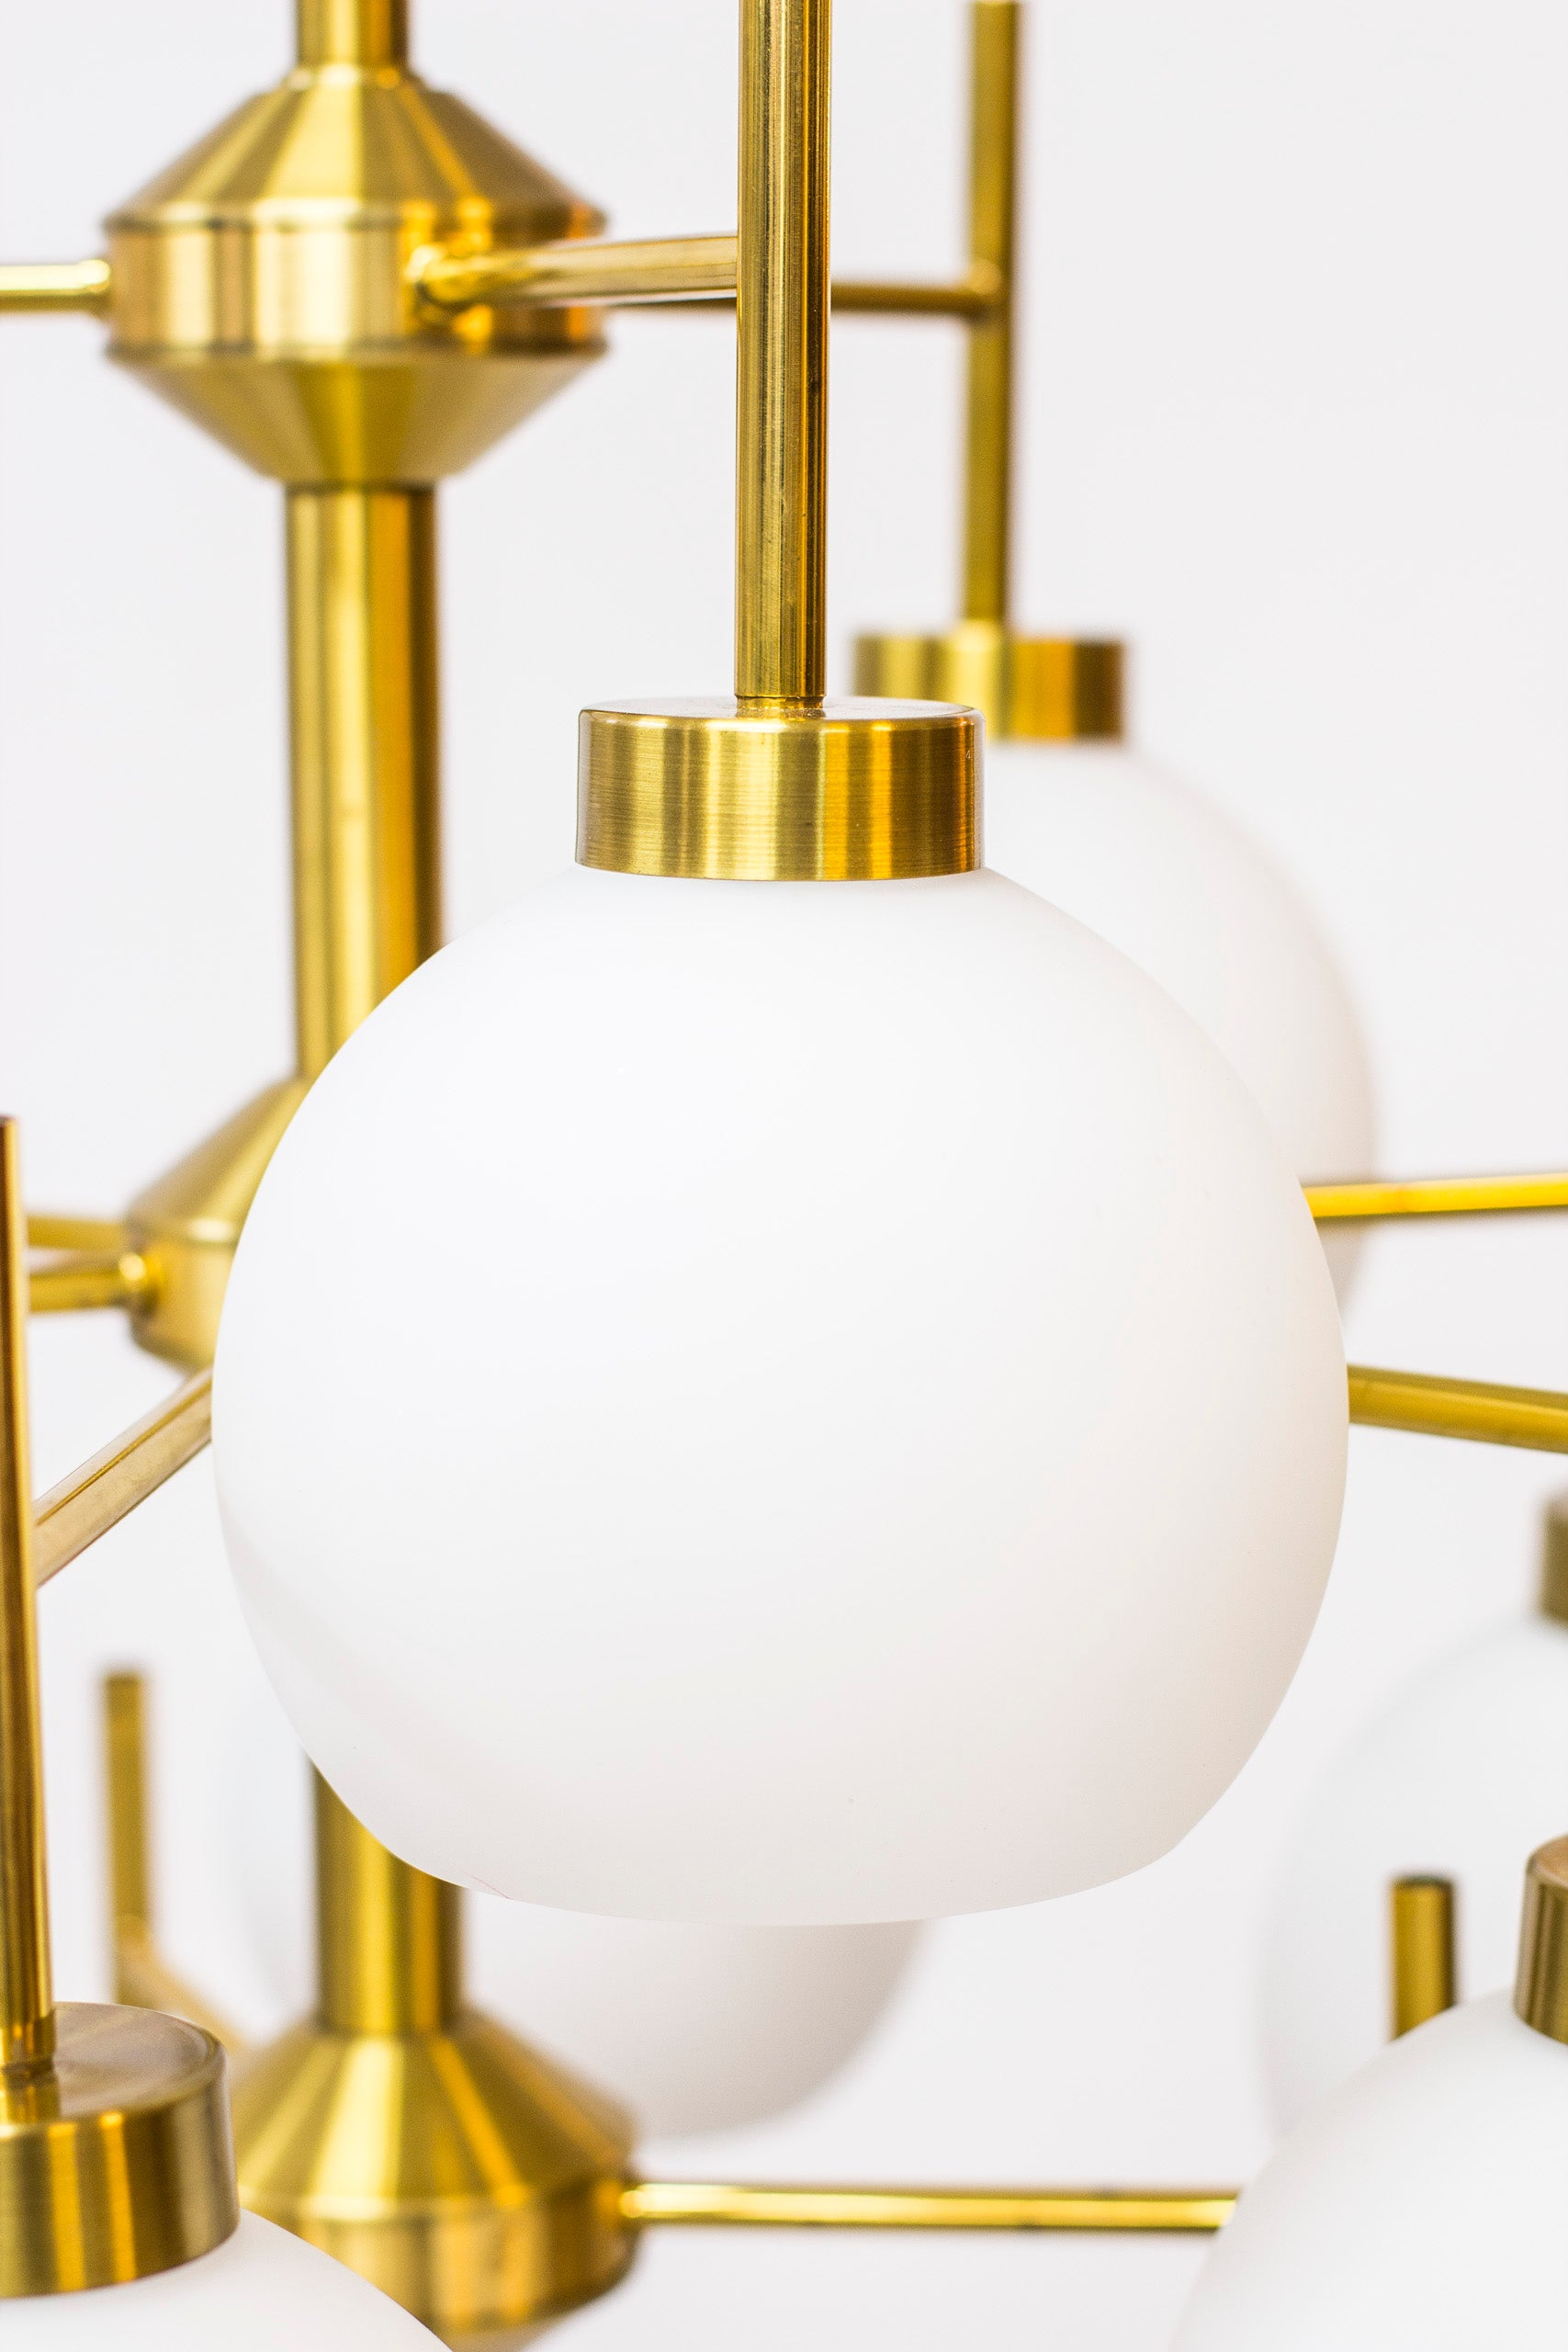 Brass chandeliers by Holger Johansson for Westal no.2